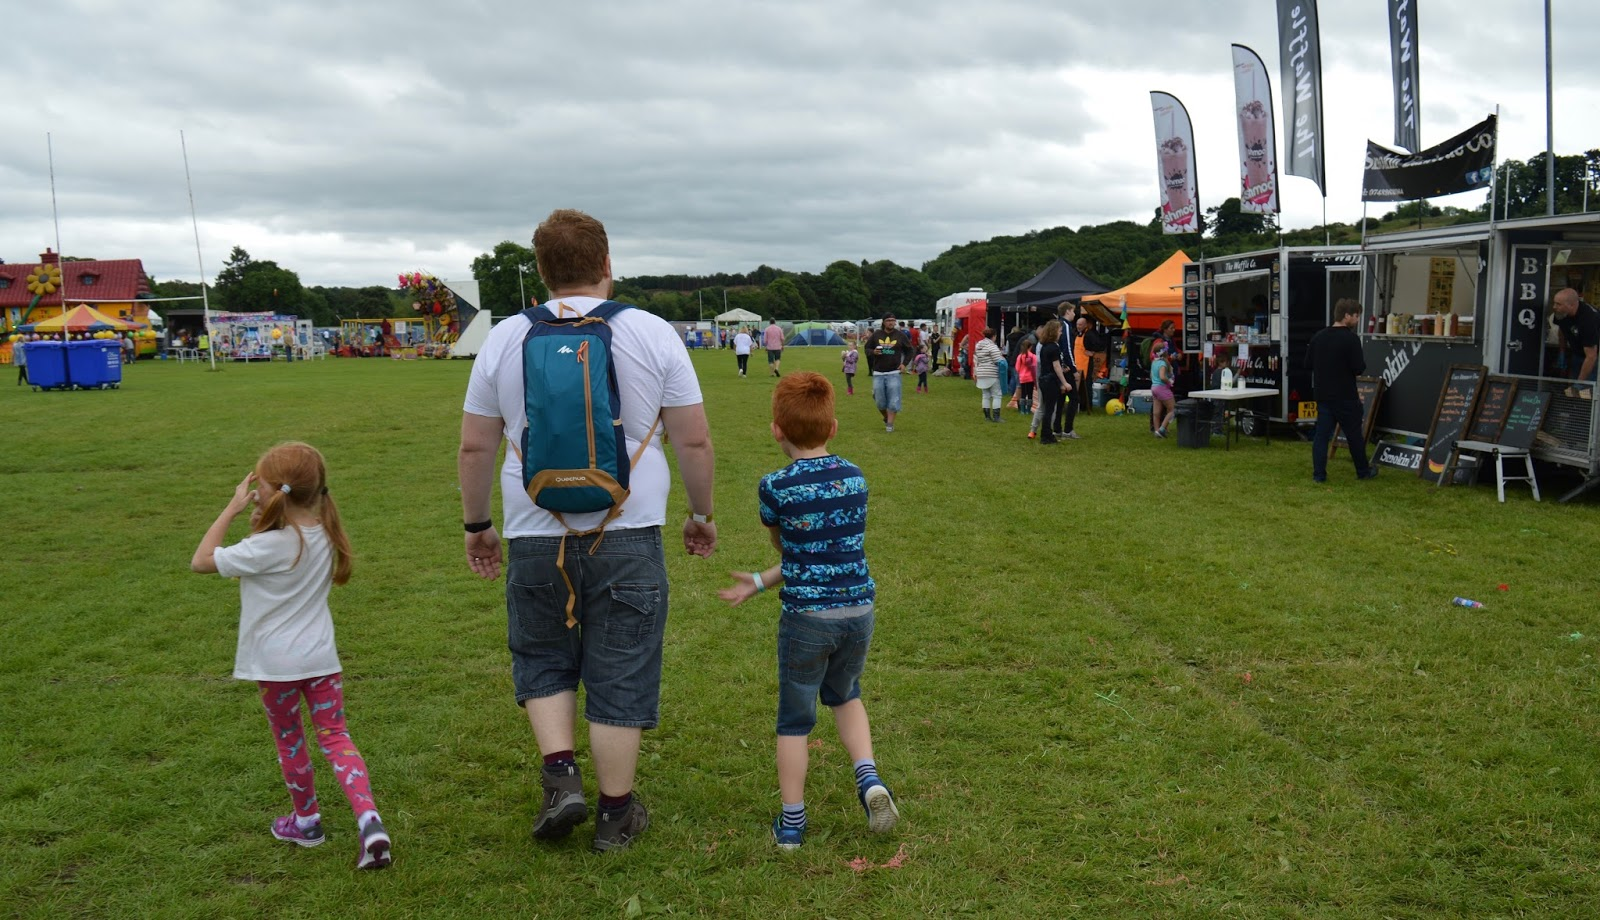 We're heading to Festival on the Wall in Northumberland and the Just So Festival in Cheshire this year. Here are our 10 Essential Items to pack when visiting a festival with kids. - Rucksack